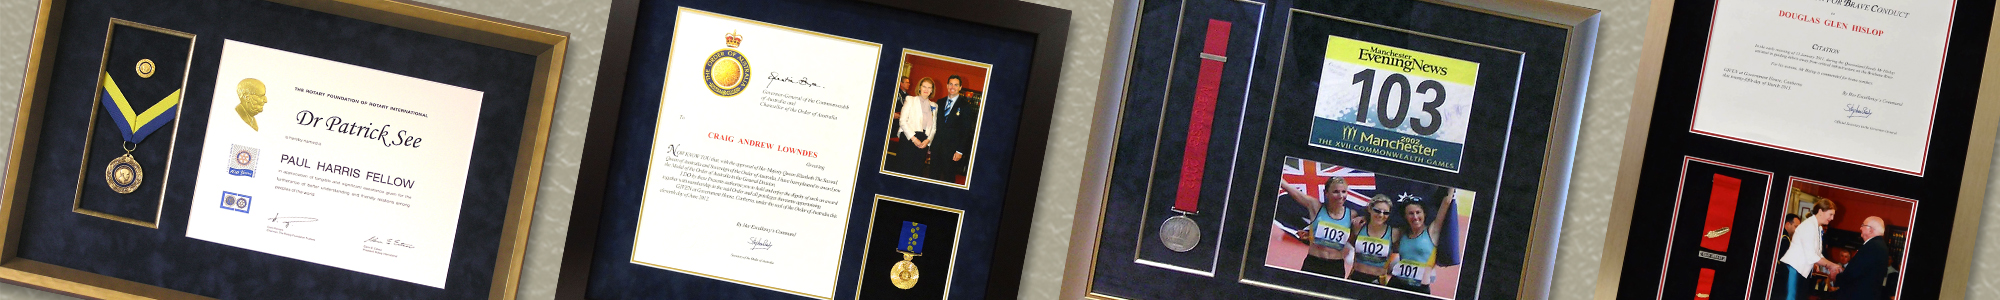 Sporting and Personal Achievement Medal Framing